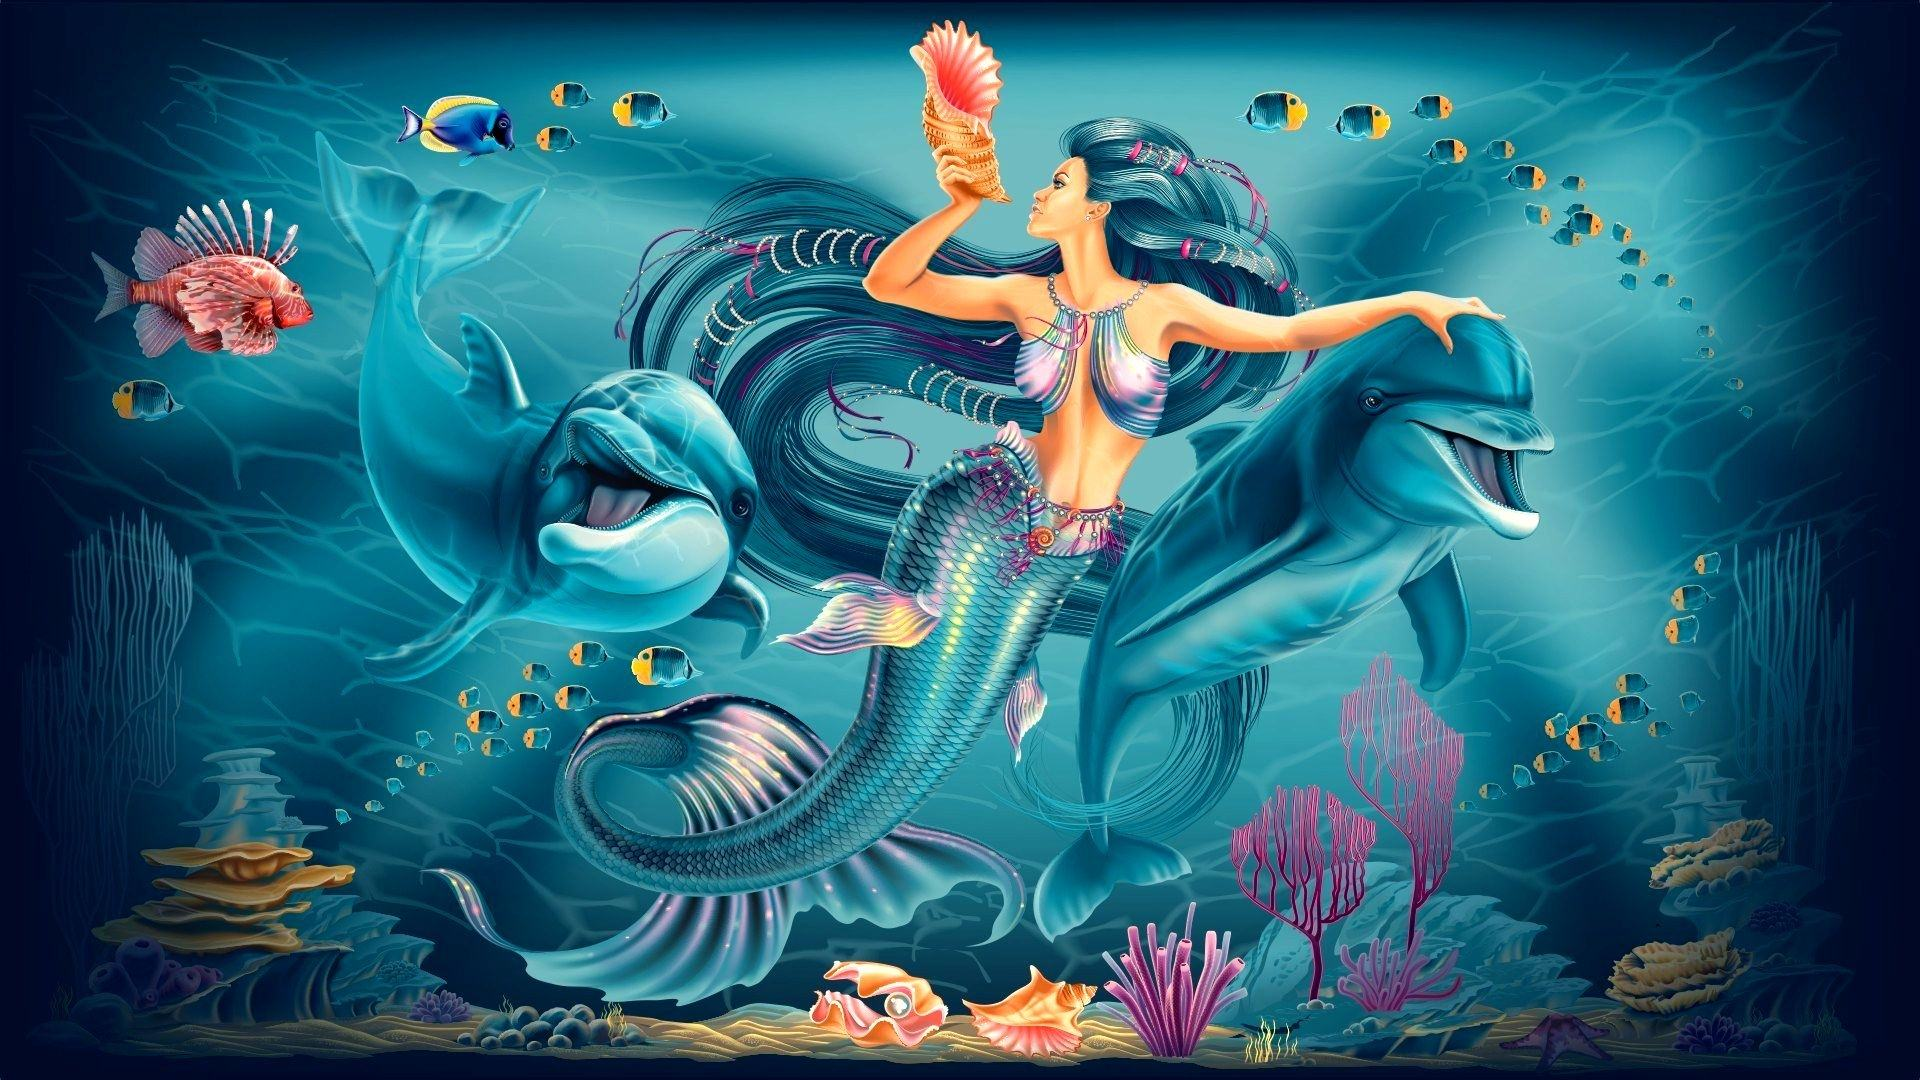 Animated Mermaid and Dolphins